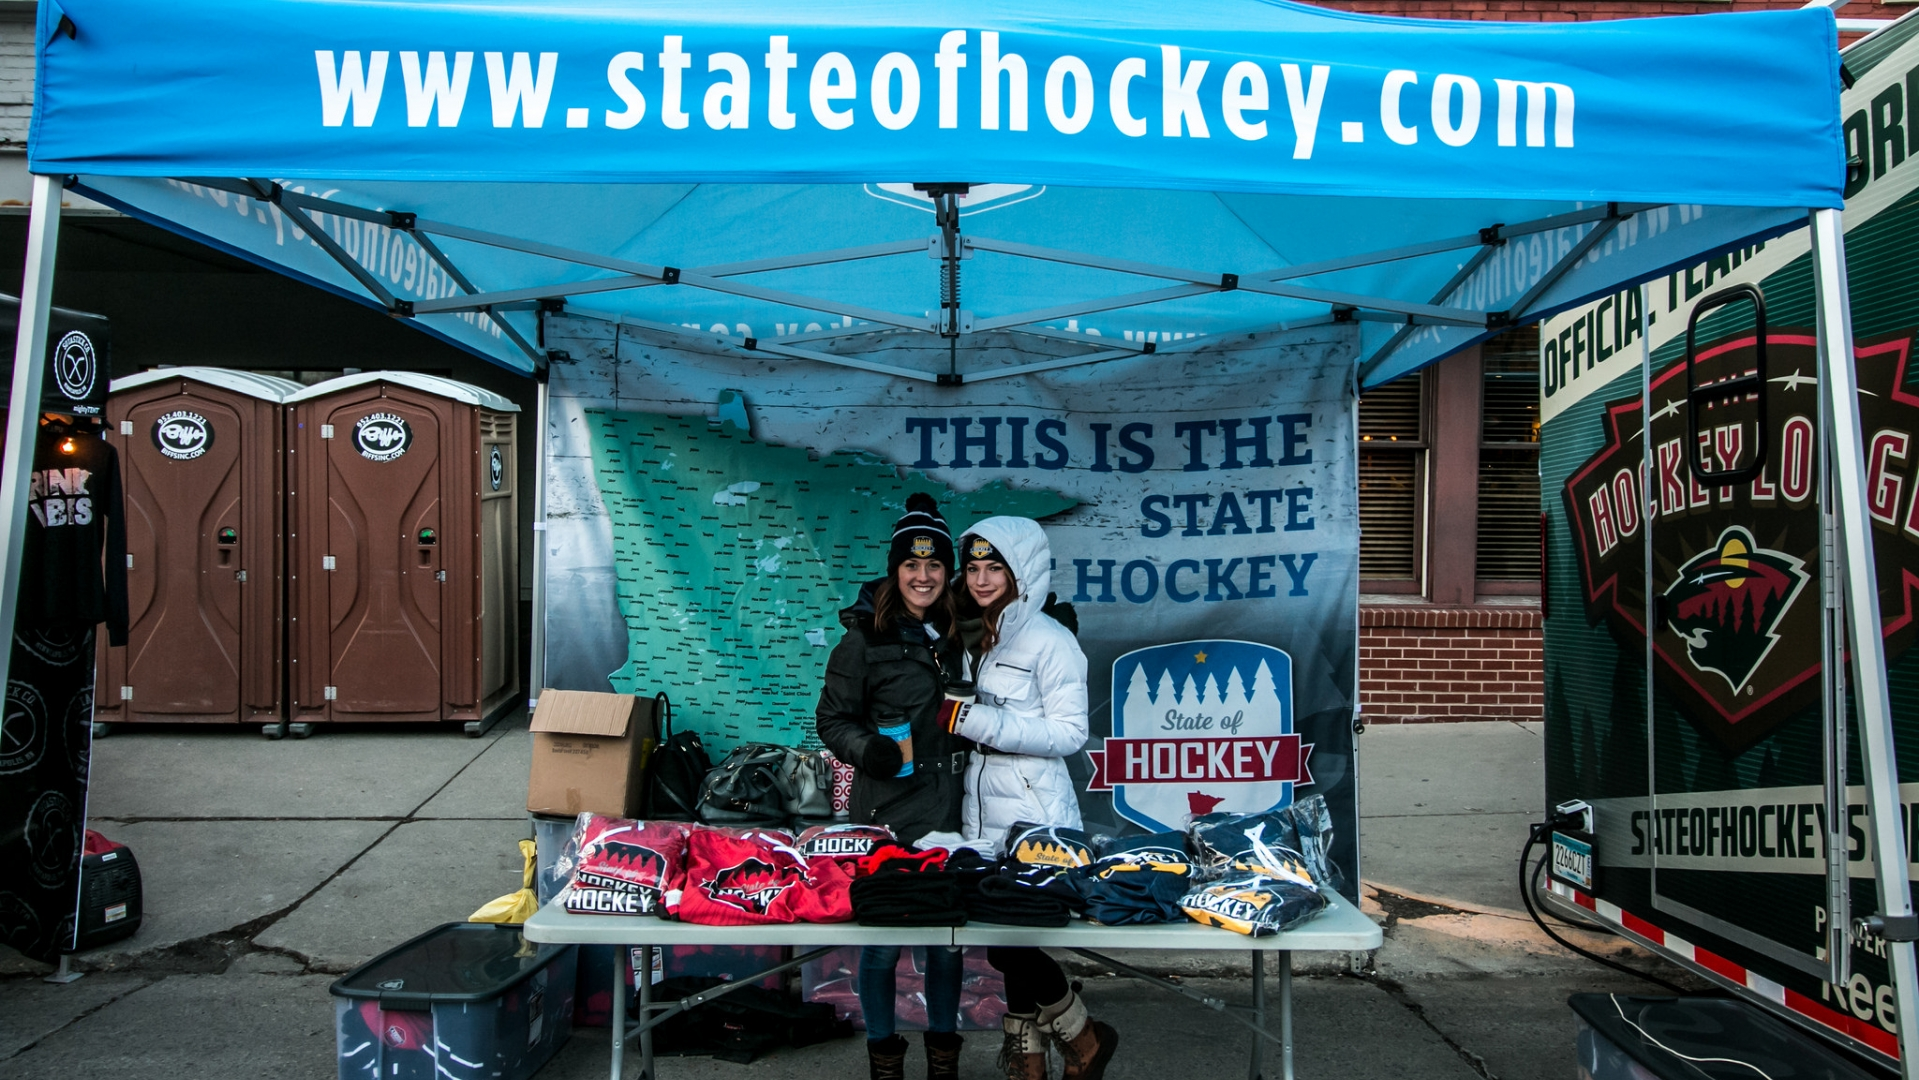 Check out the hockey vendors at the Interactive Hockey Zone!